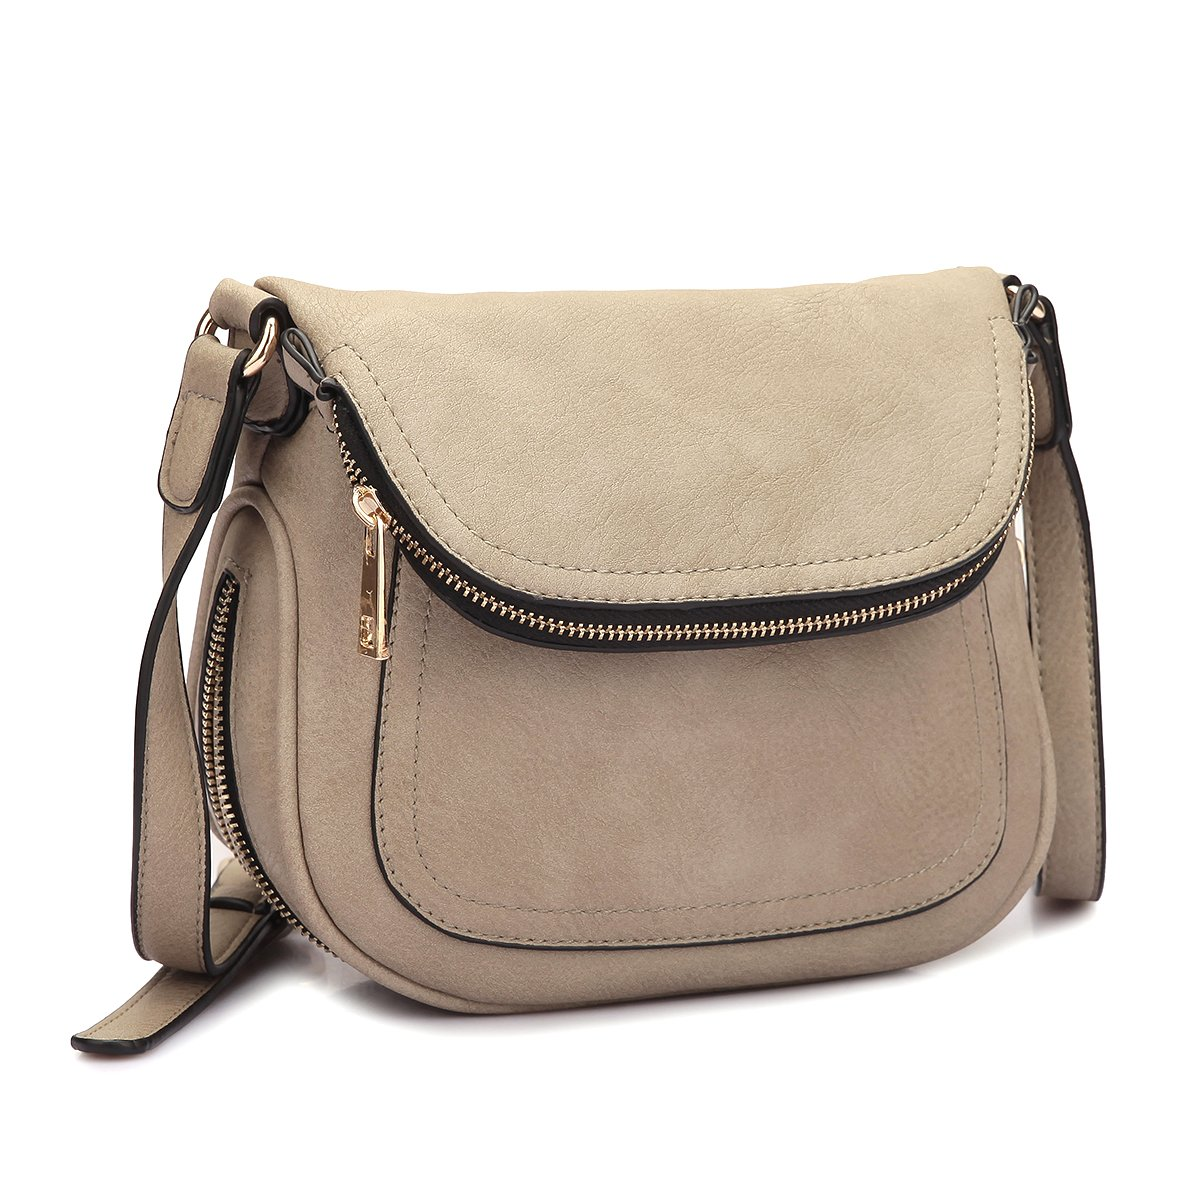 Lady Lightweight Crossbody Bags for Women Small Crossbody Purses Travel Bags Soft Shoulder Bags Vegan Leather